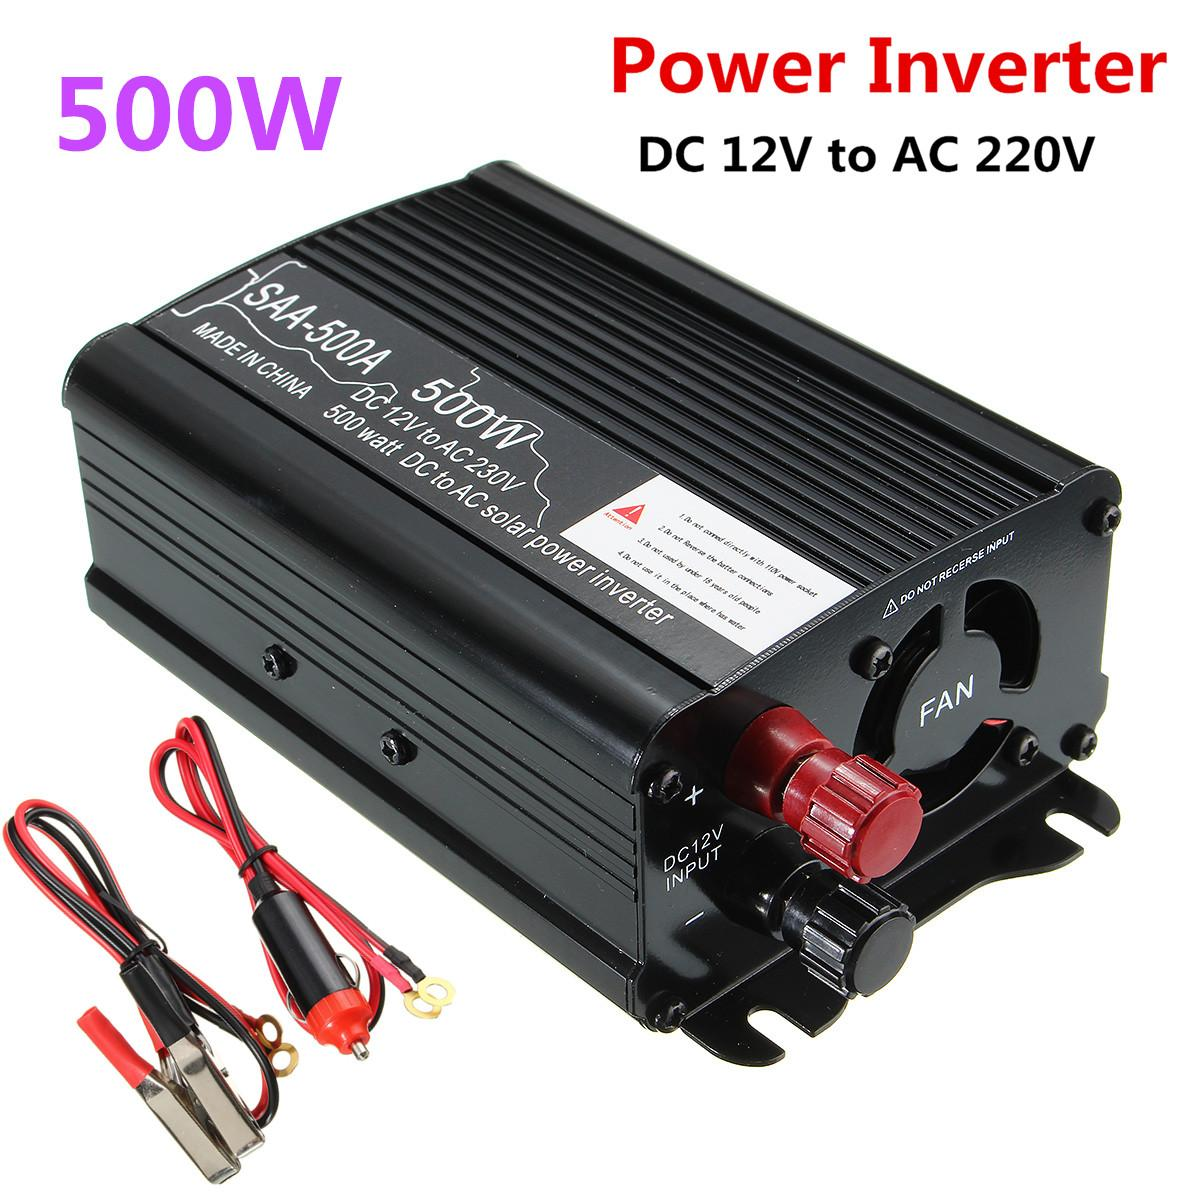 Tragbare Inverter 12 v 220 v 500 watt <font><b>Auto</b></font> Modifizierte Sinus Welle Spannung Transformator Power Inverter Konverter <font><b>Auto</b></font> Ladung USB image